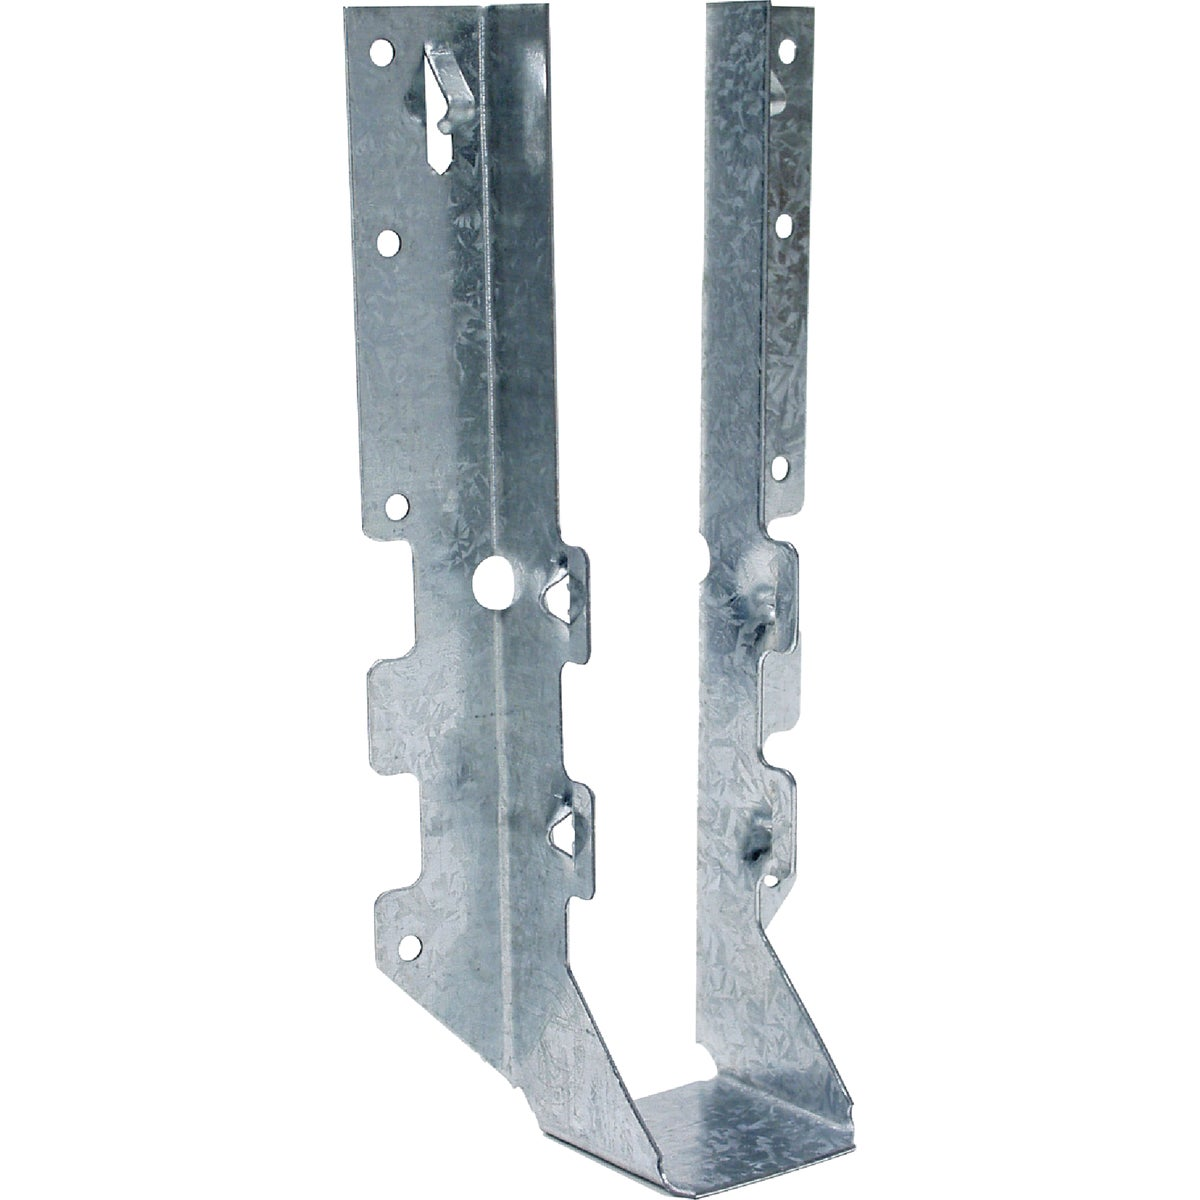 2X10 JOIST HANGER ZX - LUS210Z by Simpson Strong Tie